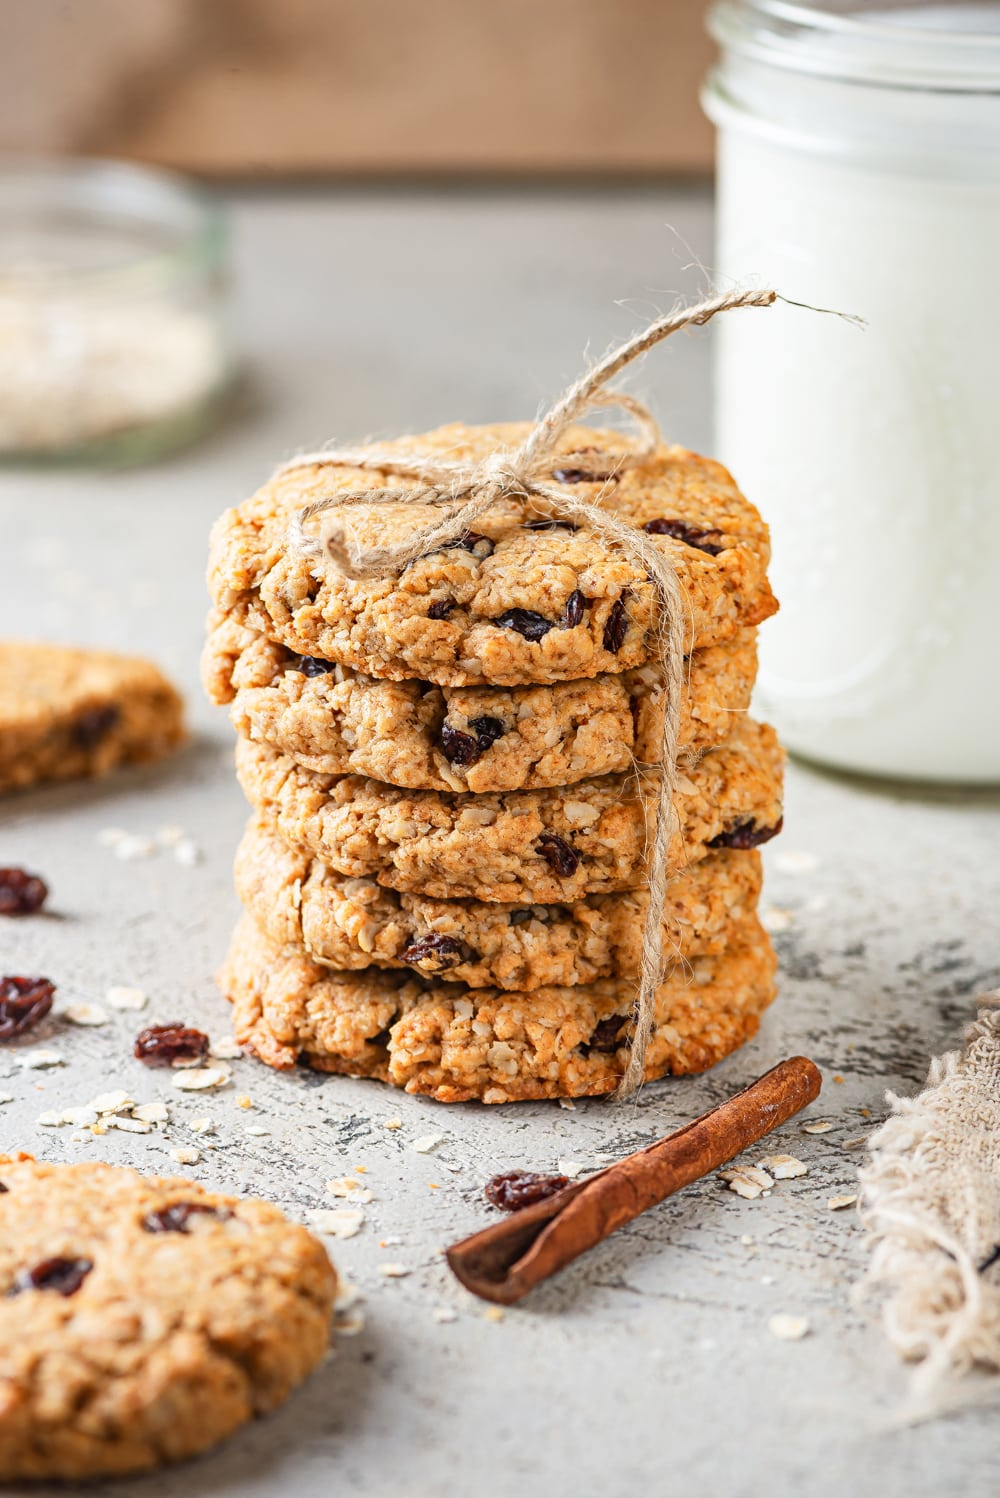 Five vegan oatmeal raisin cookies stacked on top of one another with a piece of yarn tied around the cookies. A glass jar of milk is behind the cookies to the right and a cinnamon stick is directly in front of the cookies. A half of a cookie is to the left of the cinnamon stick and everything is on a grey counter.